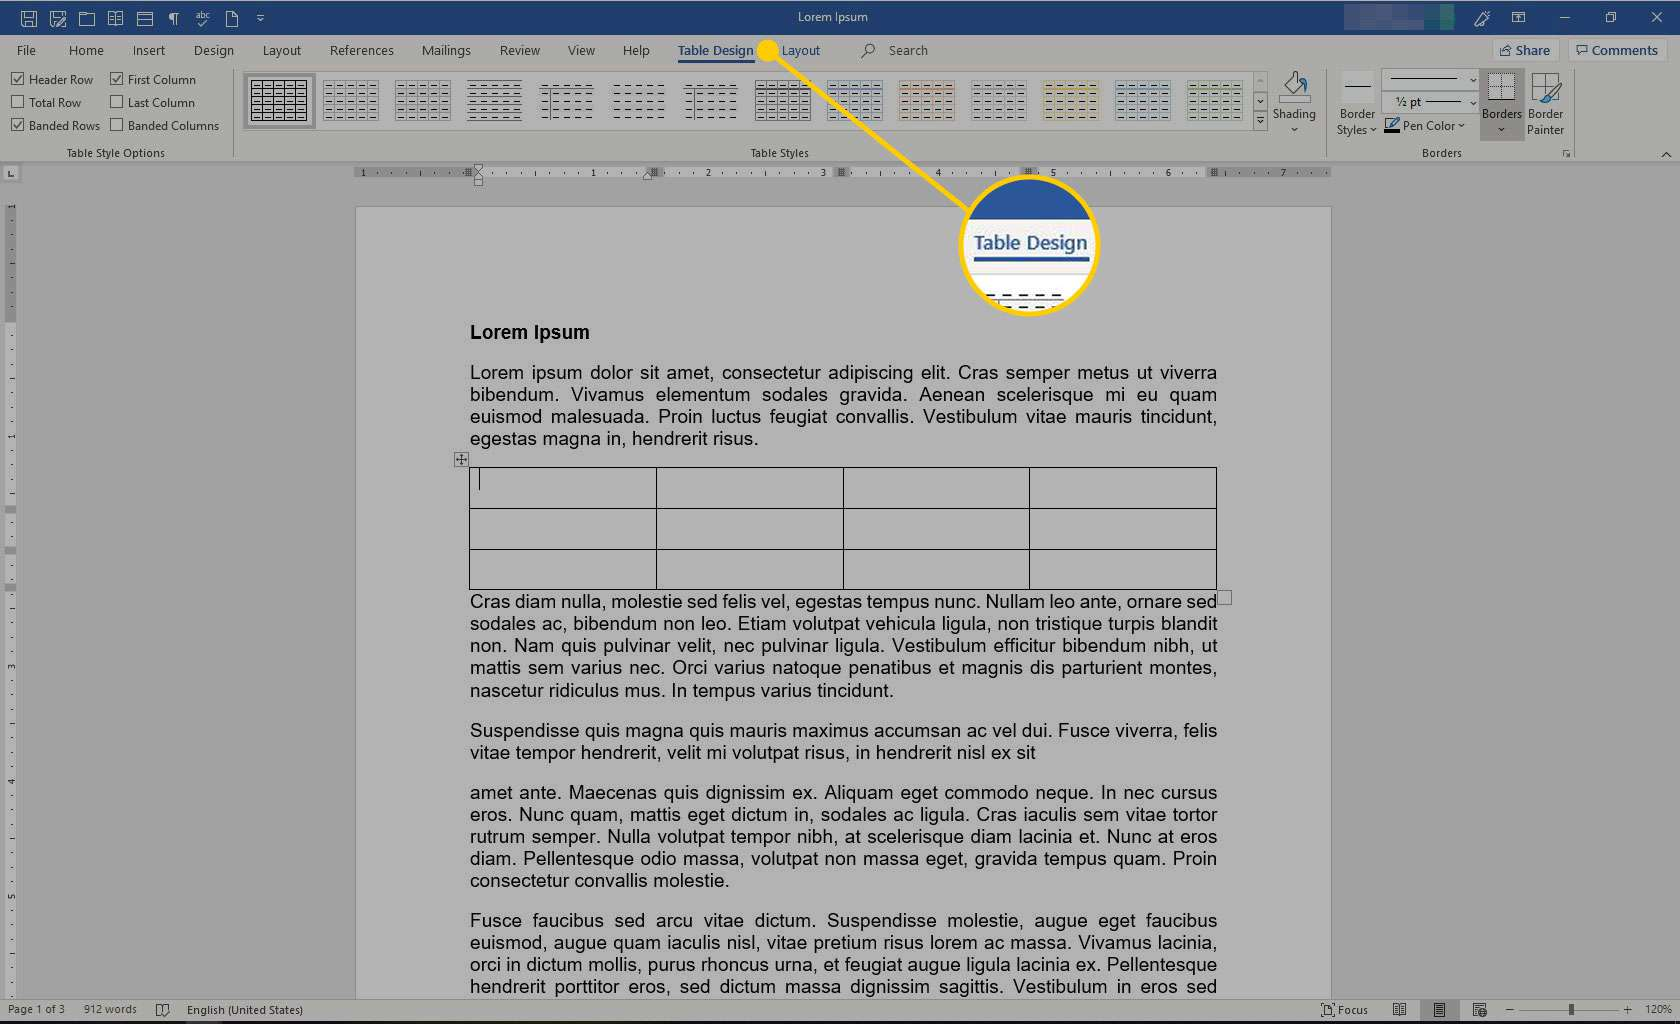 Microsoft Word with the Table Design heading highlighted